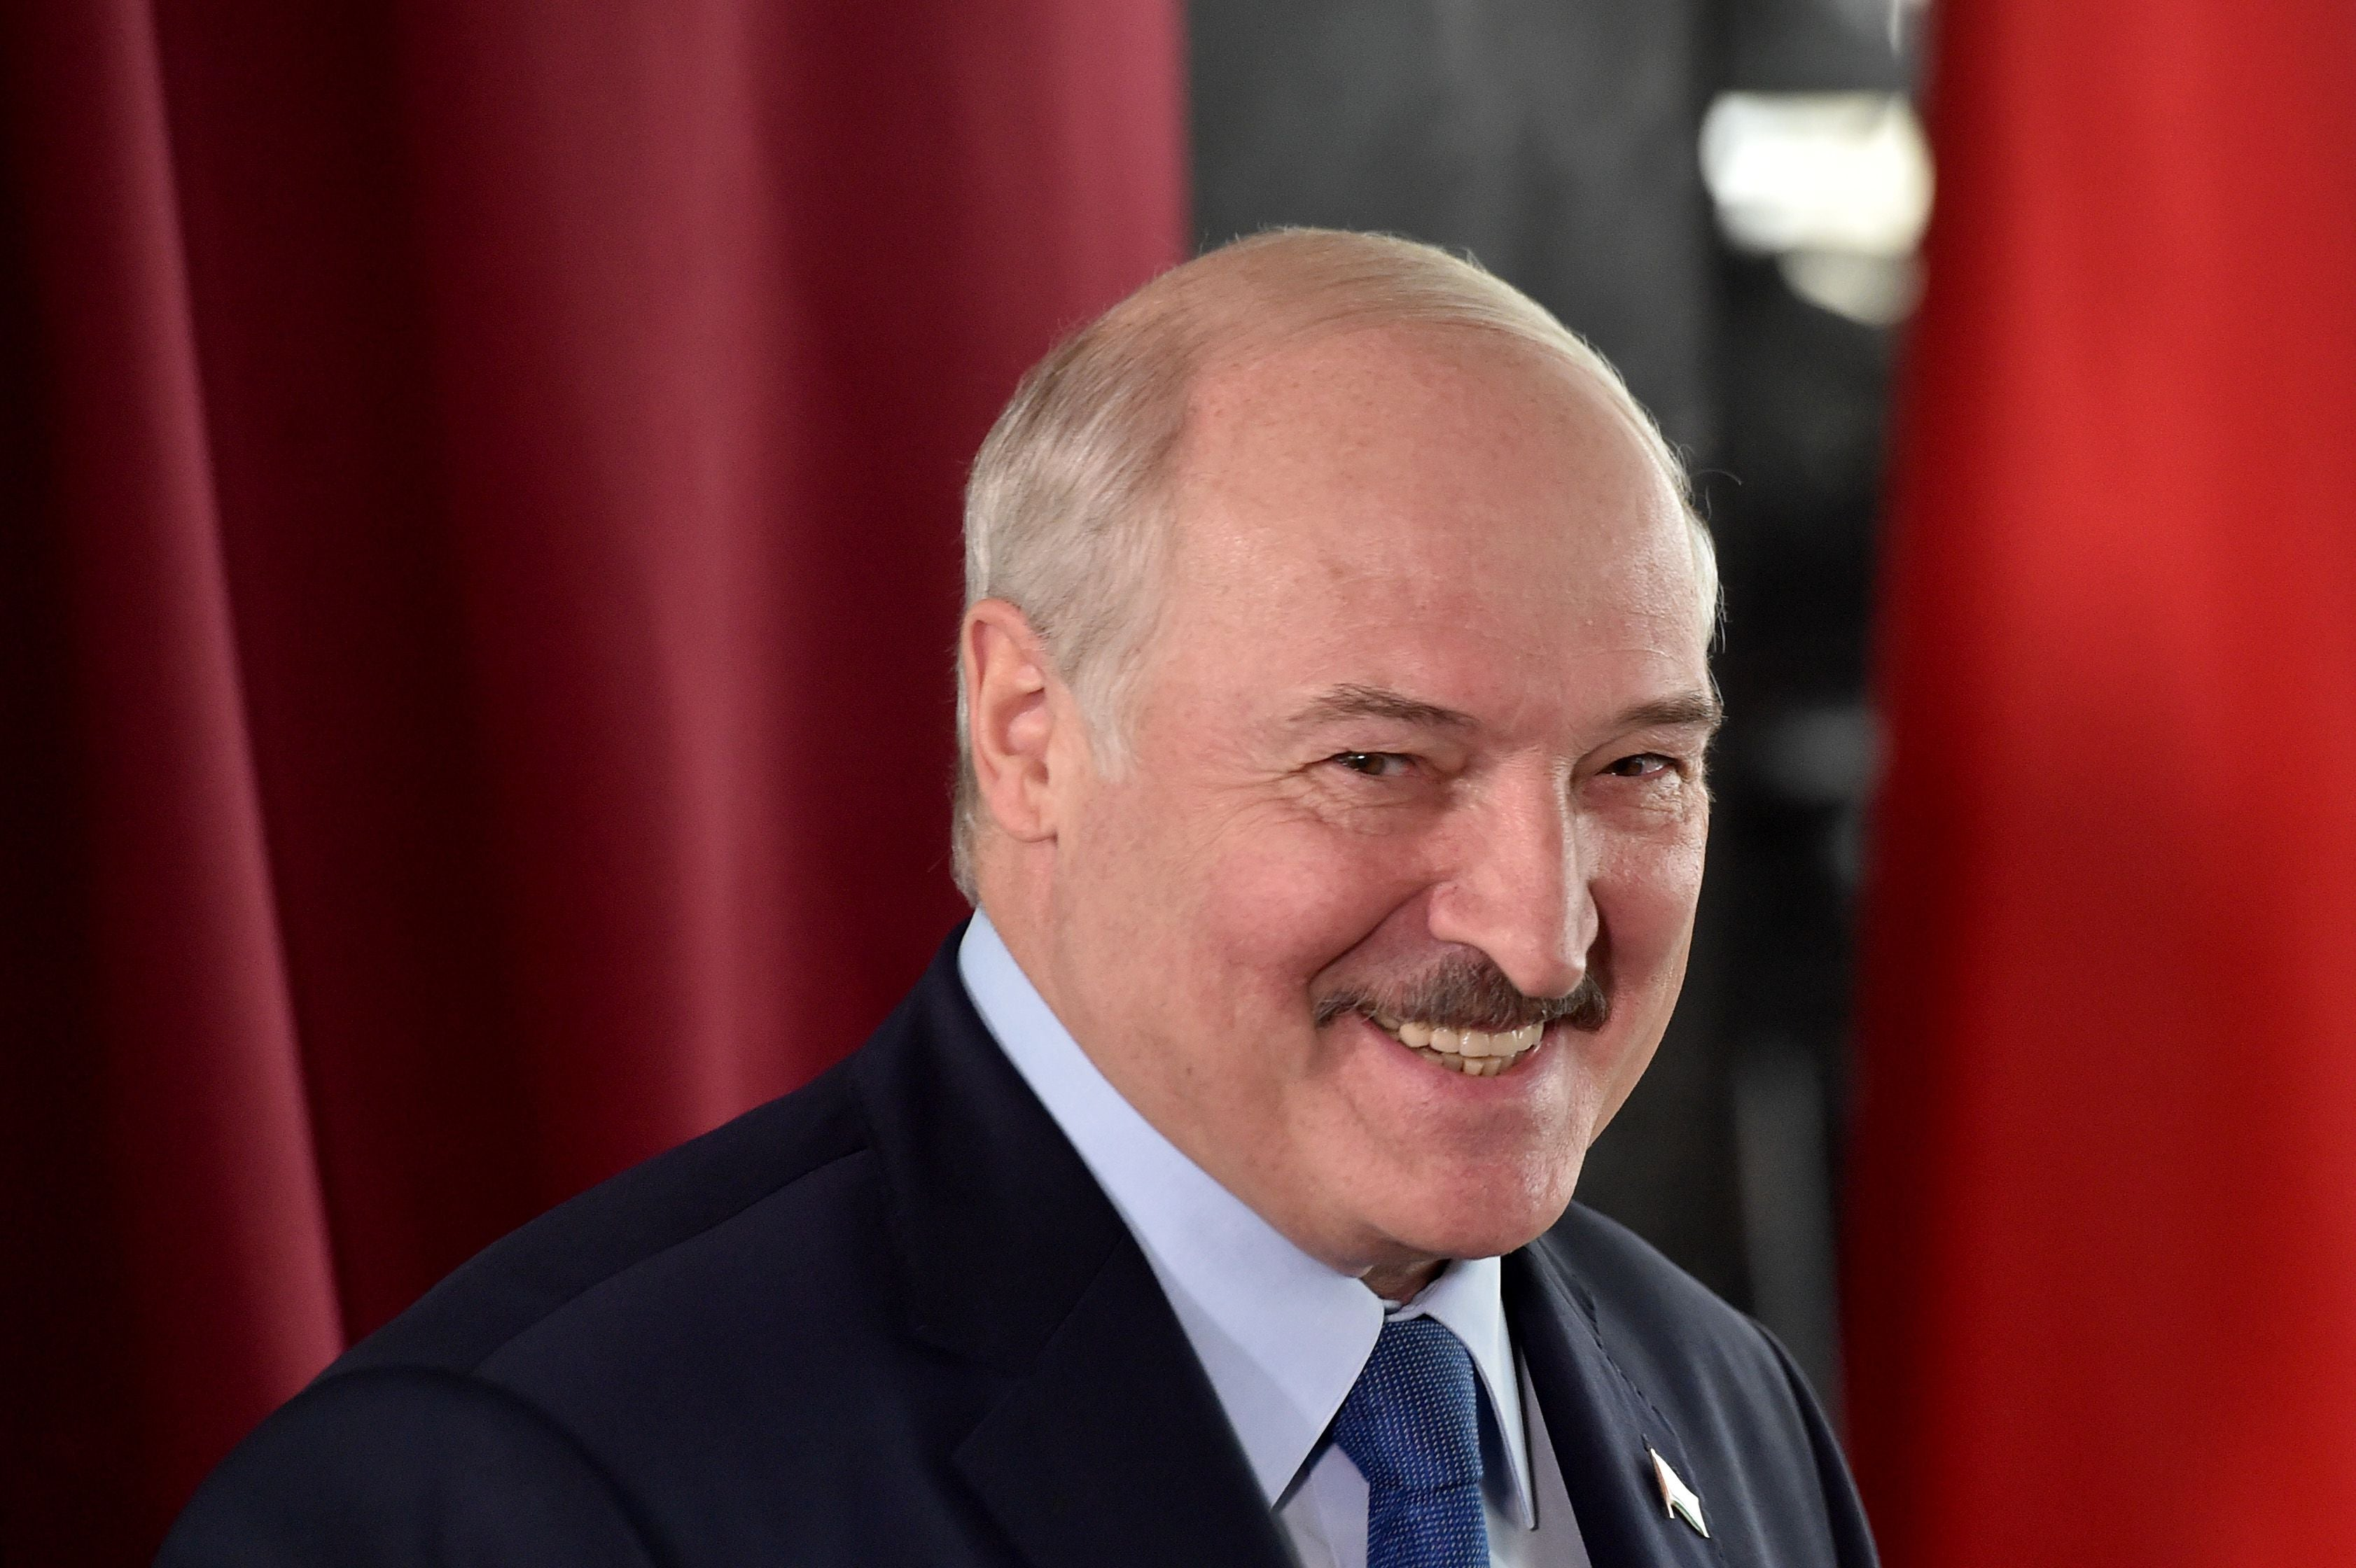 Belarus: Lukashenko secretly inaugurates himself after disputed election - independent